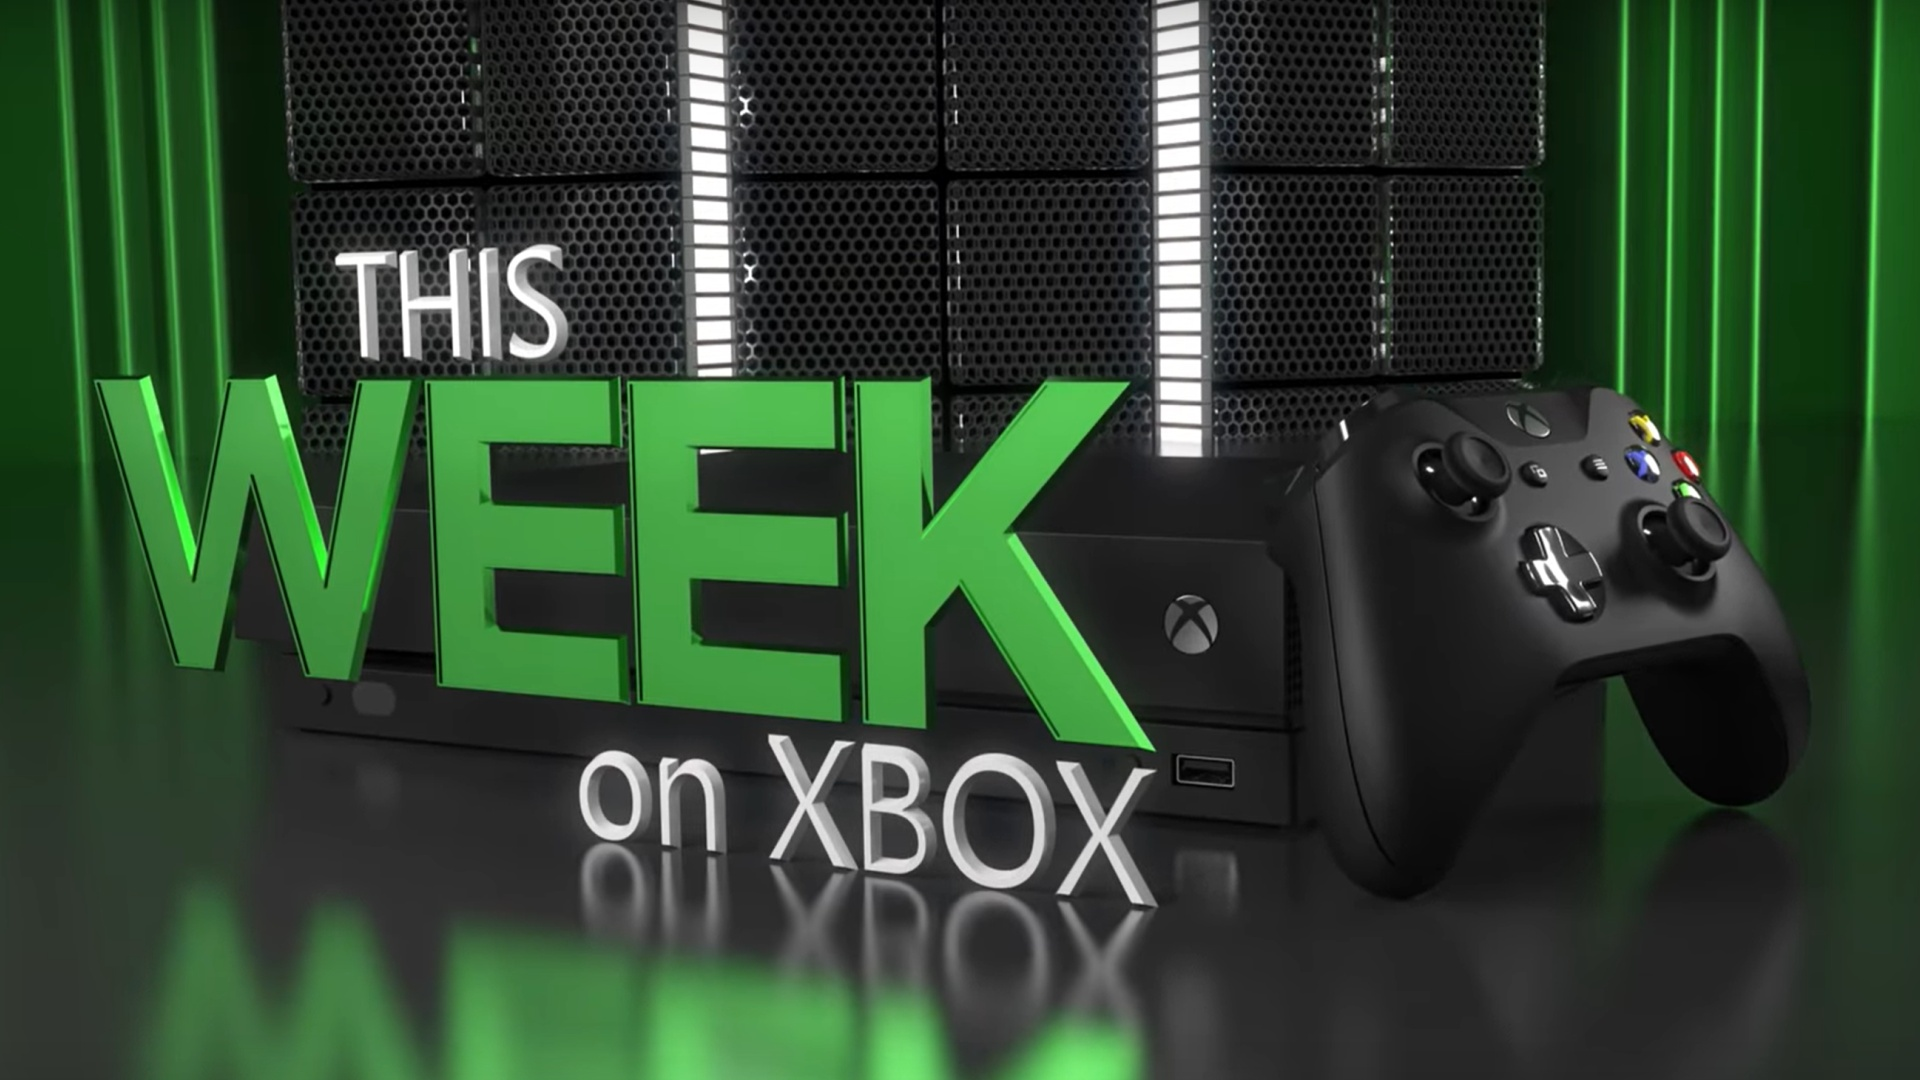 Video For This Week on Xbox: May 1, 2020